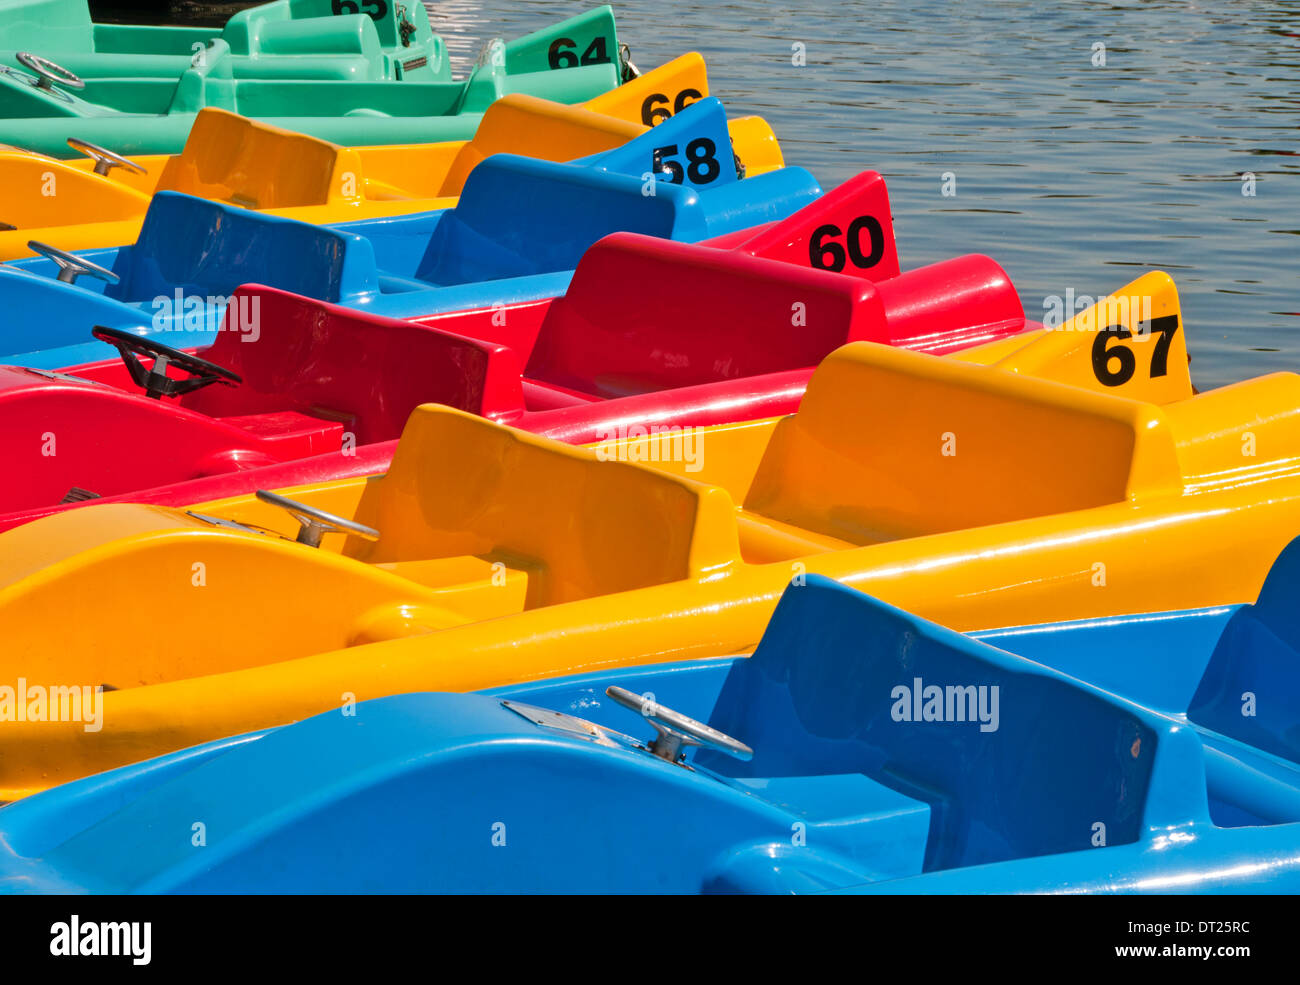 Colourful Pleasure Boats on The River Dee, The Groves, Chester, Cheshire, England, UK - Stock Image